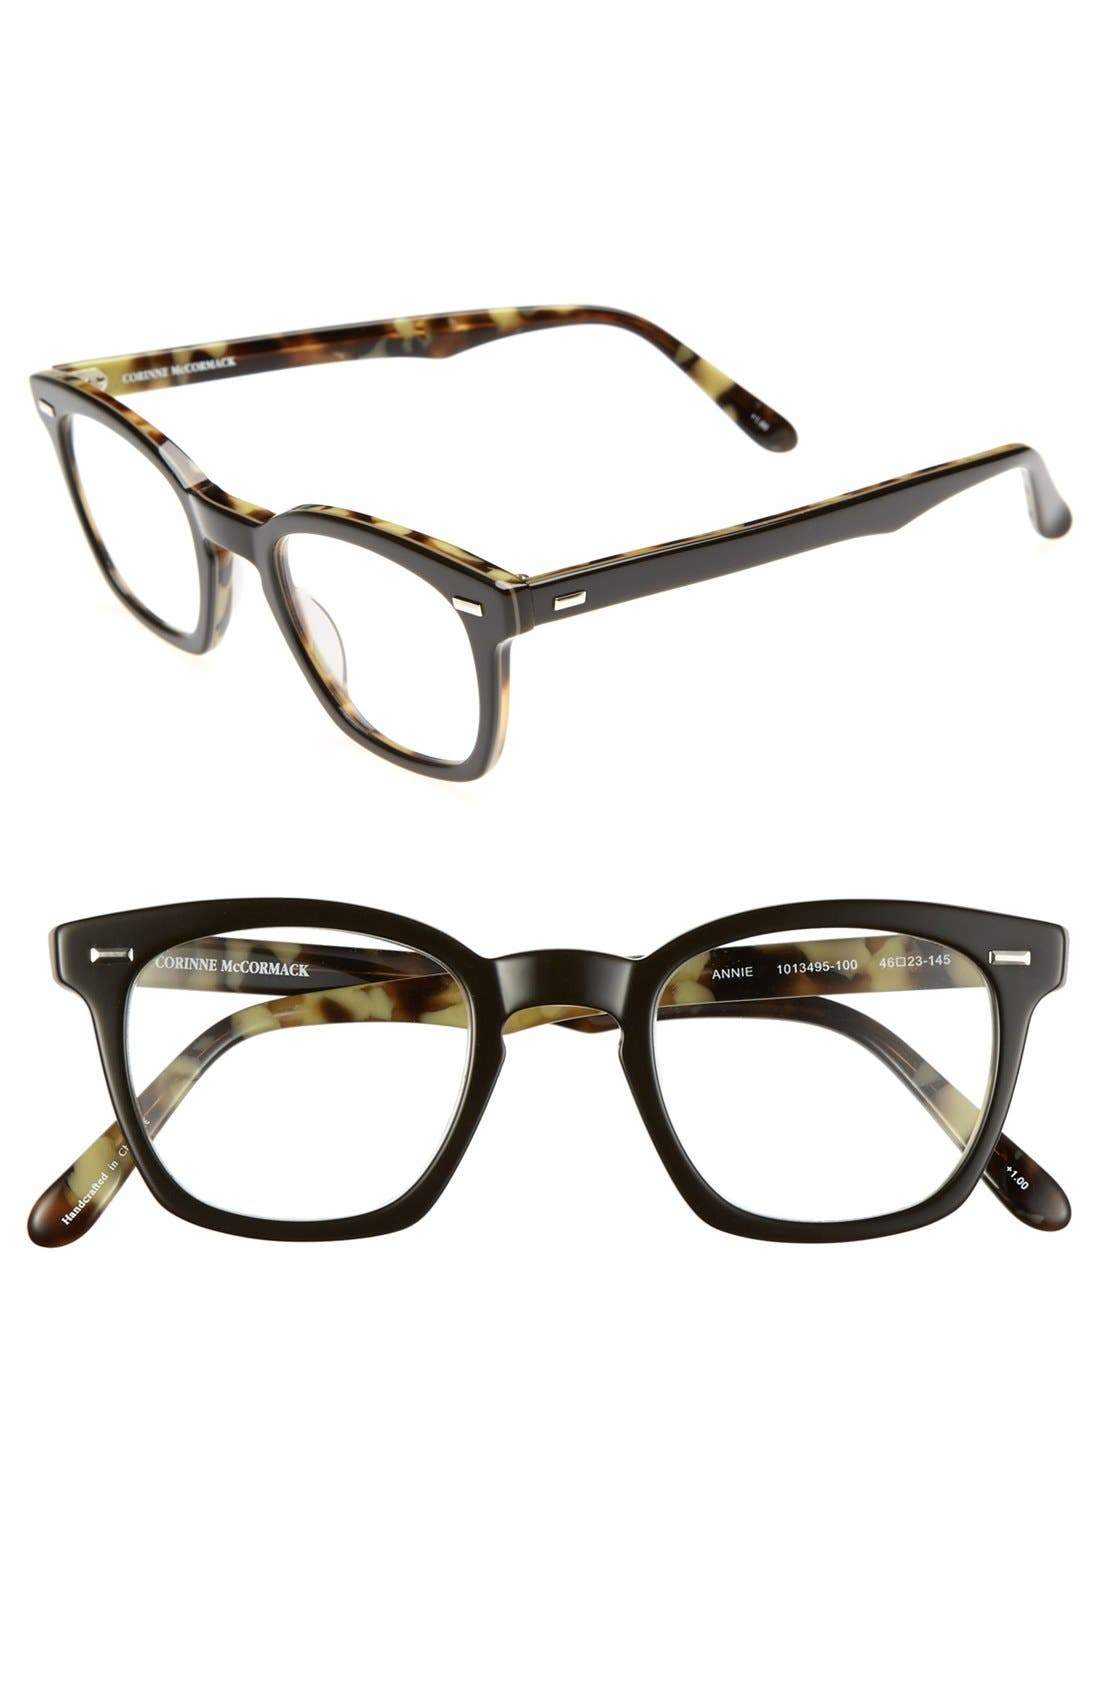 Main Image - Corinne McCormack 'Annie' 46mm Reading Glasses